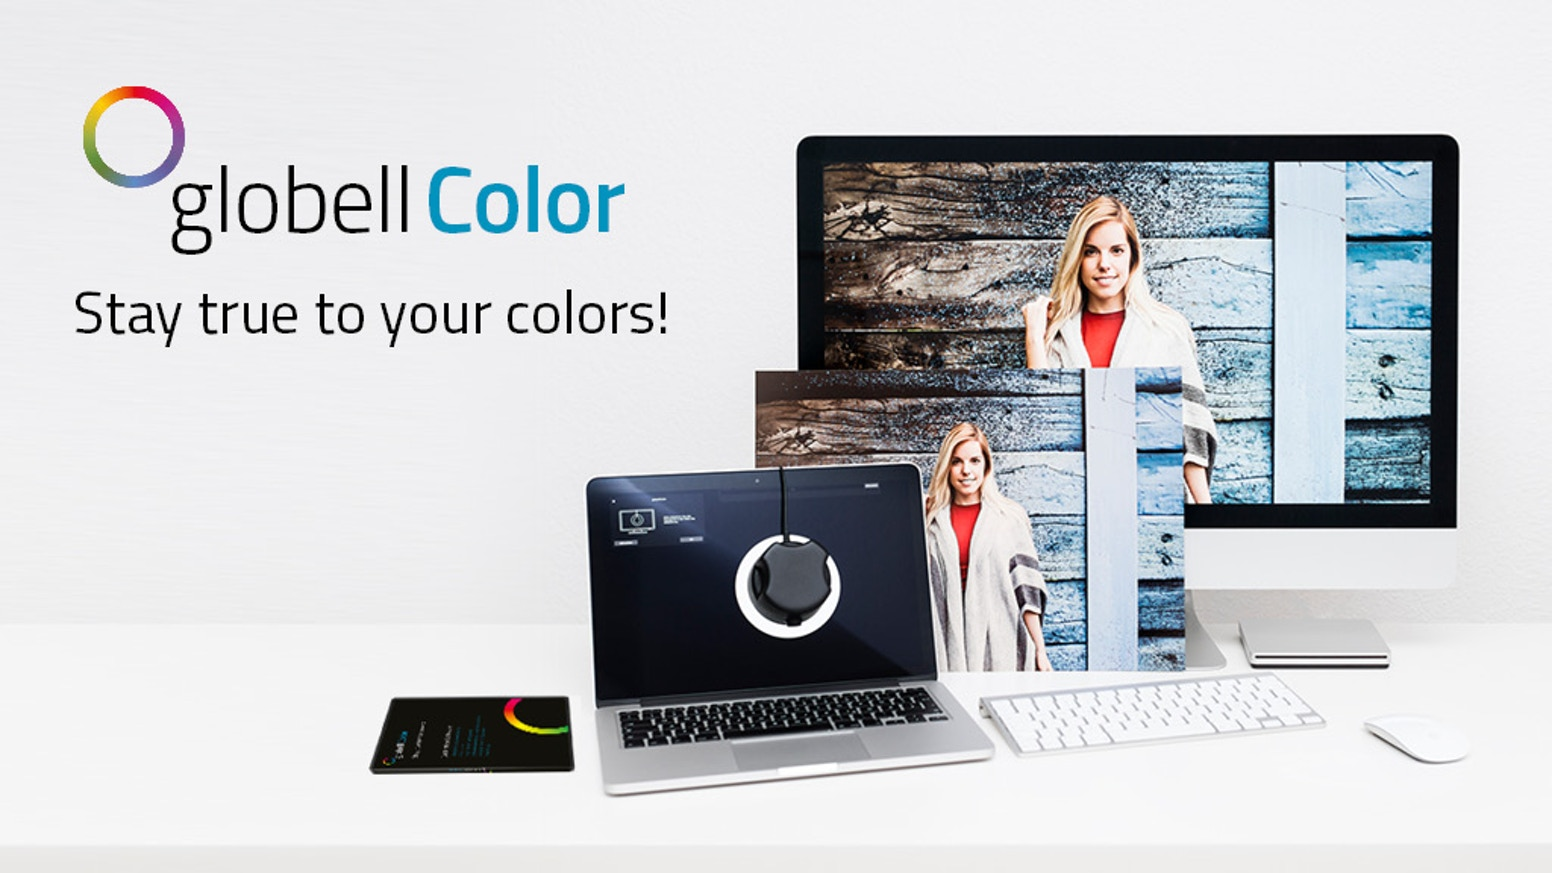 Professional screen calibration for everyone. globellColor makes color calibration easy and affordable without any compromises. Subscribe to our newsletter to get latest news!